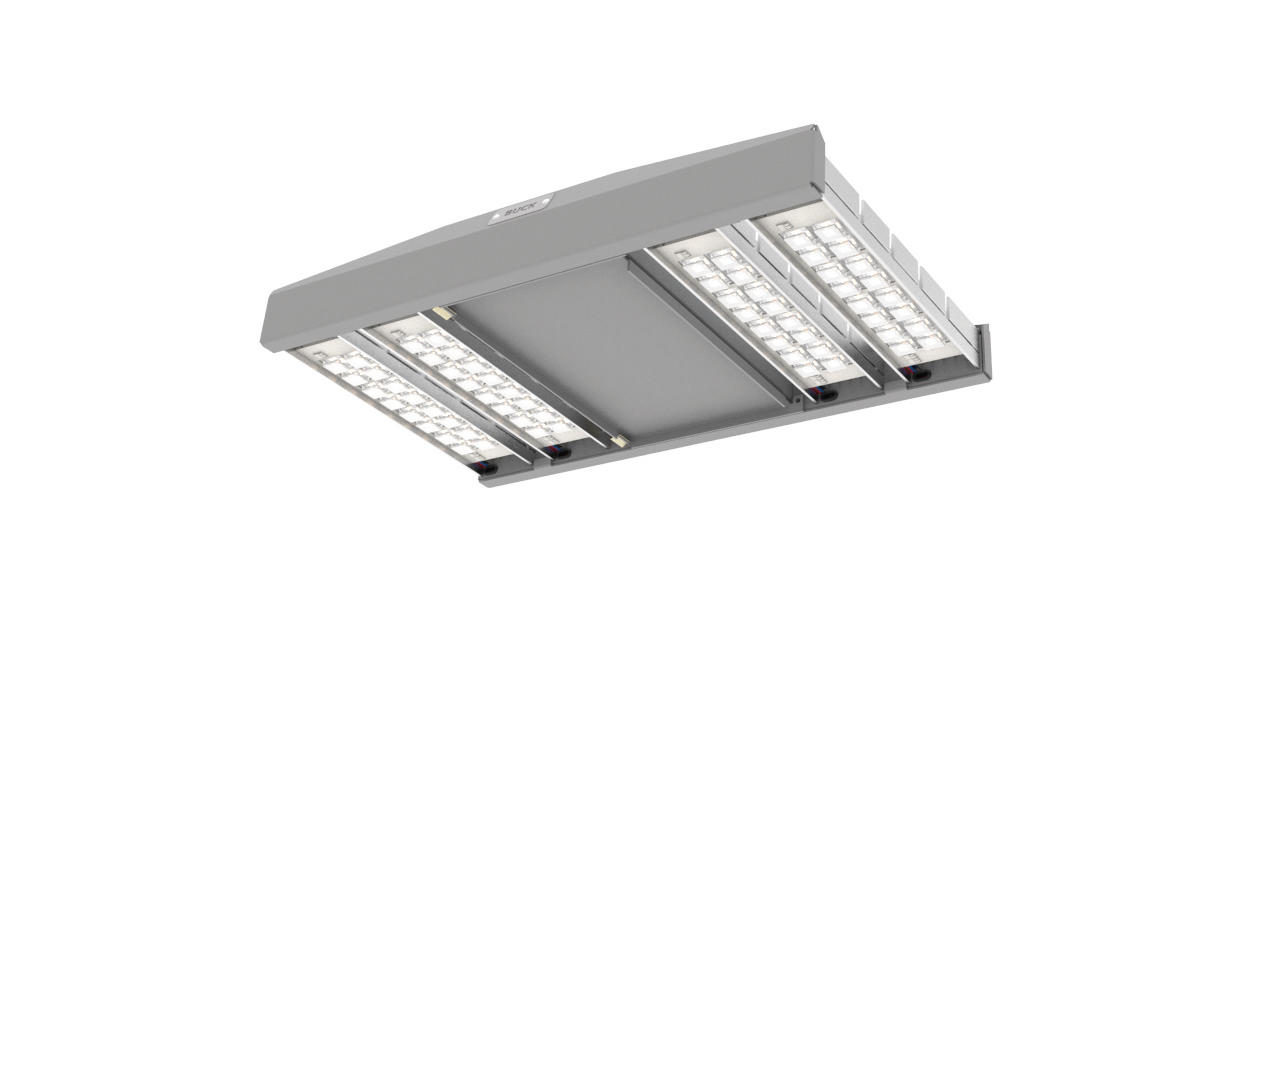 Tangram | HB2 / HB4 / HB6 / HB8 by Buck | High / Low bay  sc 1 st  Architonic & TANGRAM | HB2 / HB4 / HB6 / HB8 - High / Low bay lighting from ... azcodes.com